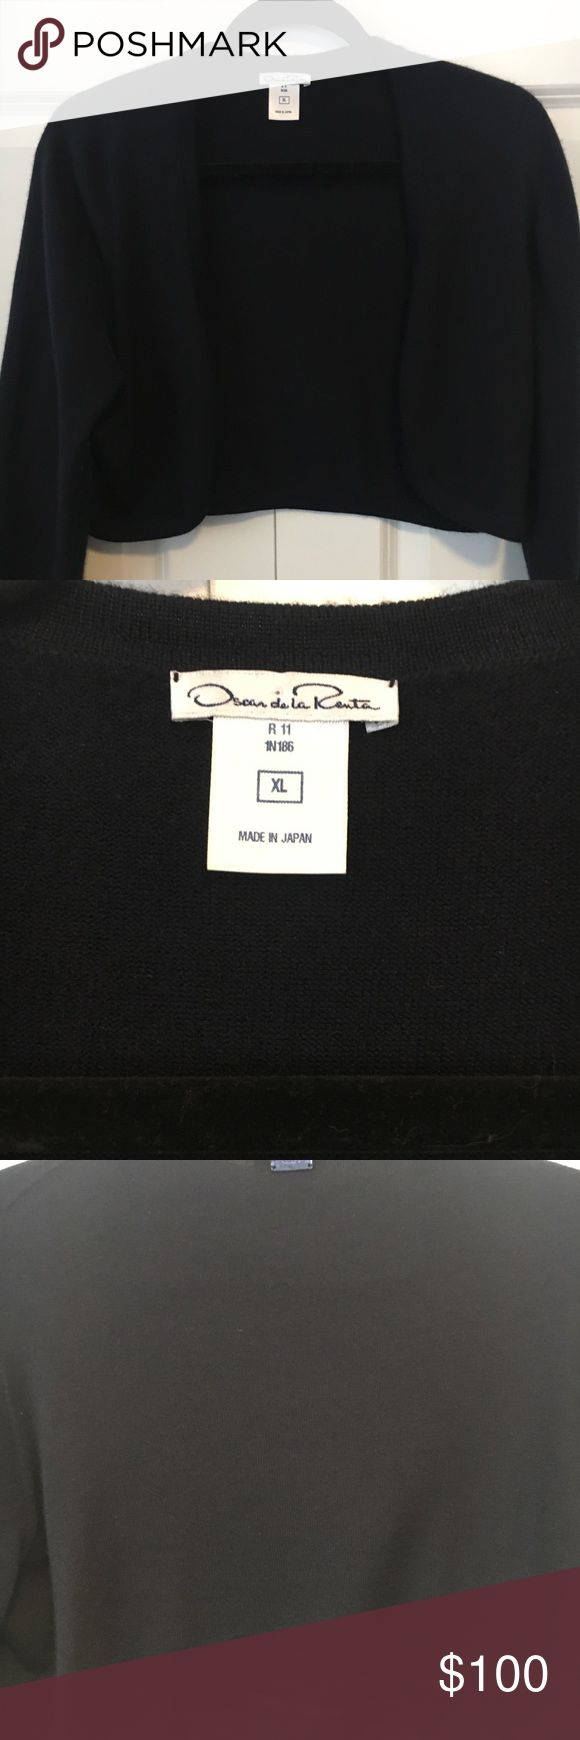 """🔥 Oscar de la Renta Navy Shrug Beautiful cashmere shrug by Oscar De La Renta.  In fabulous condition, no issues.  Never worn out.    Navy blue color.  Perfect over dresses for prom or wedding season.  Looks beautiful with printed tanks or blouses.  Open front.   16"""" long, 18"""" sleeve Oscar de la Renta Sweaters Shrugs & Ponchos"""